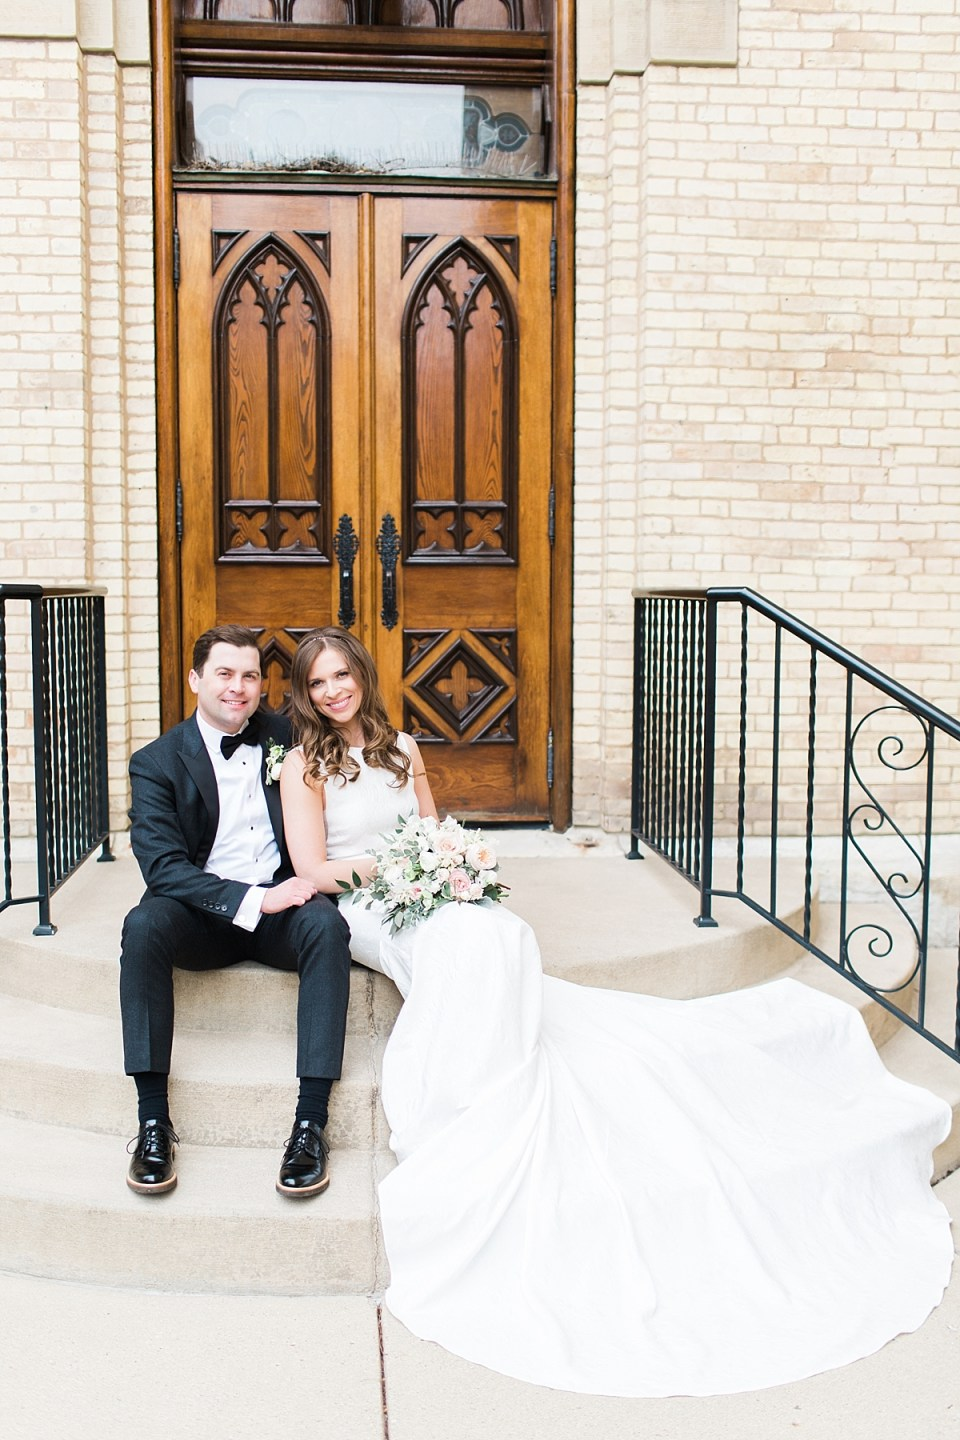 Arielle Peters Photography | Bride and groom sitting in front of cathedral doors on wedding day at the Basilica of the Sacred Heart in Notre Dame, Indiana.